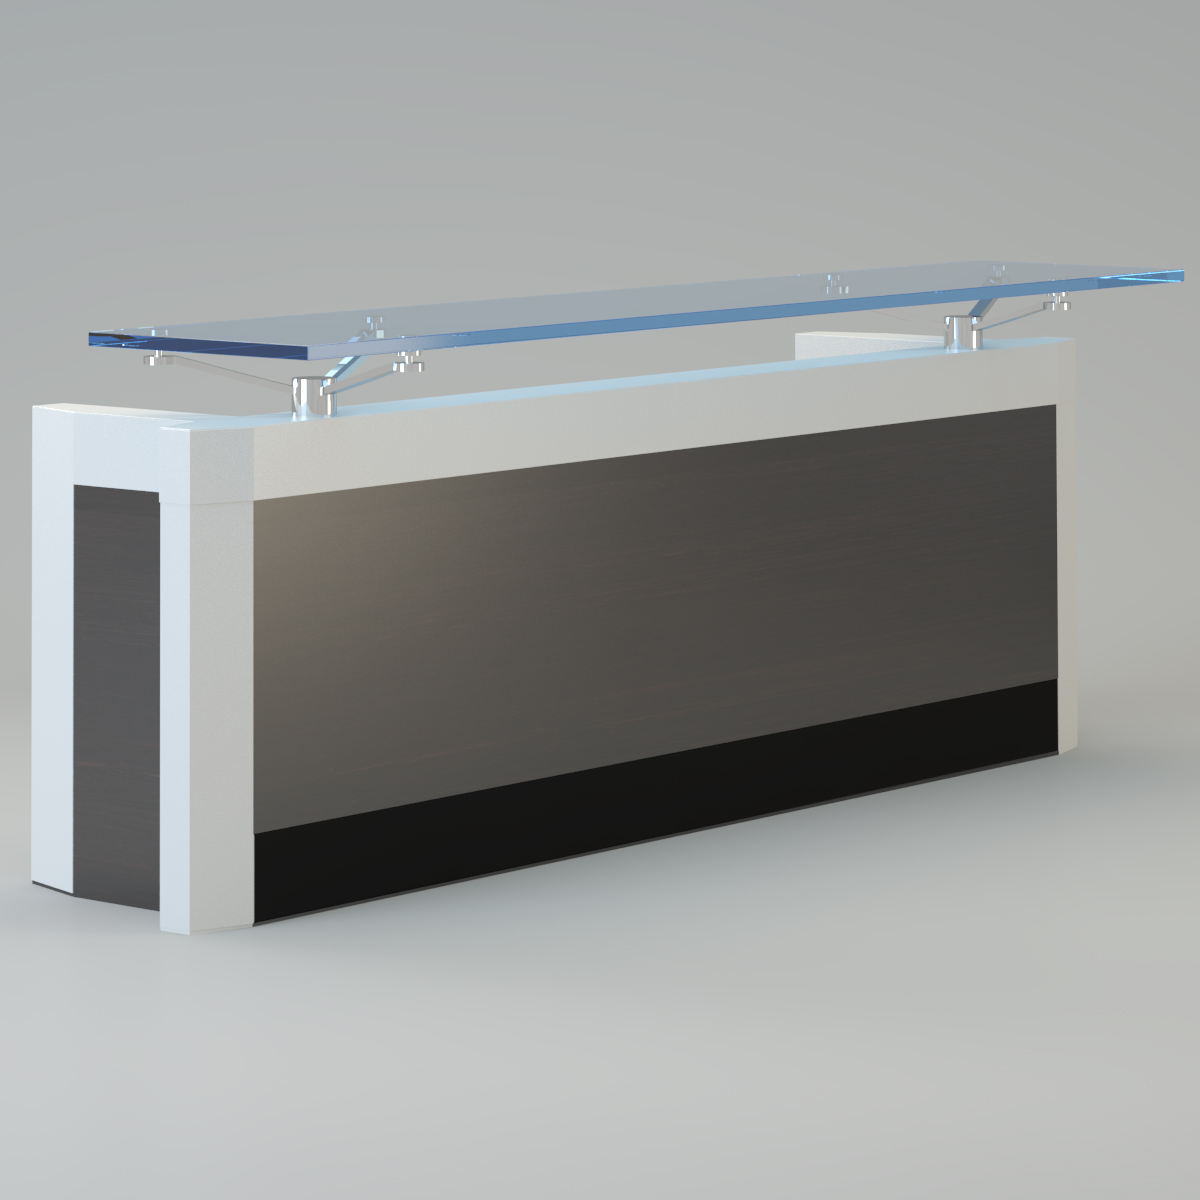 3D model Contemporary reception desk | CGTrader for Modern Office Reception Table Design  143gtk